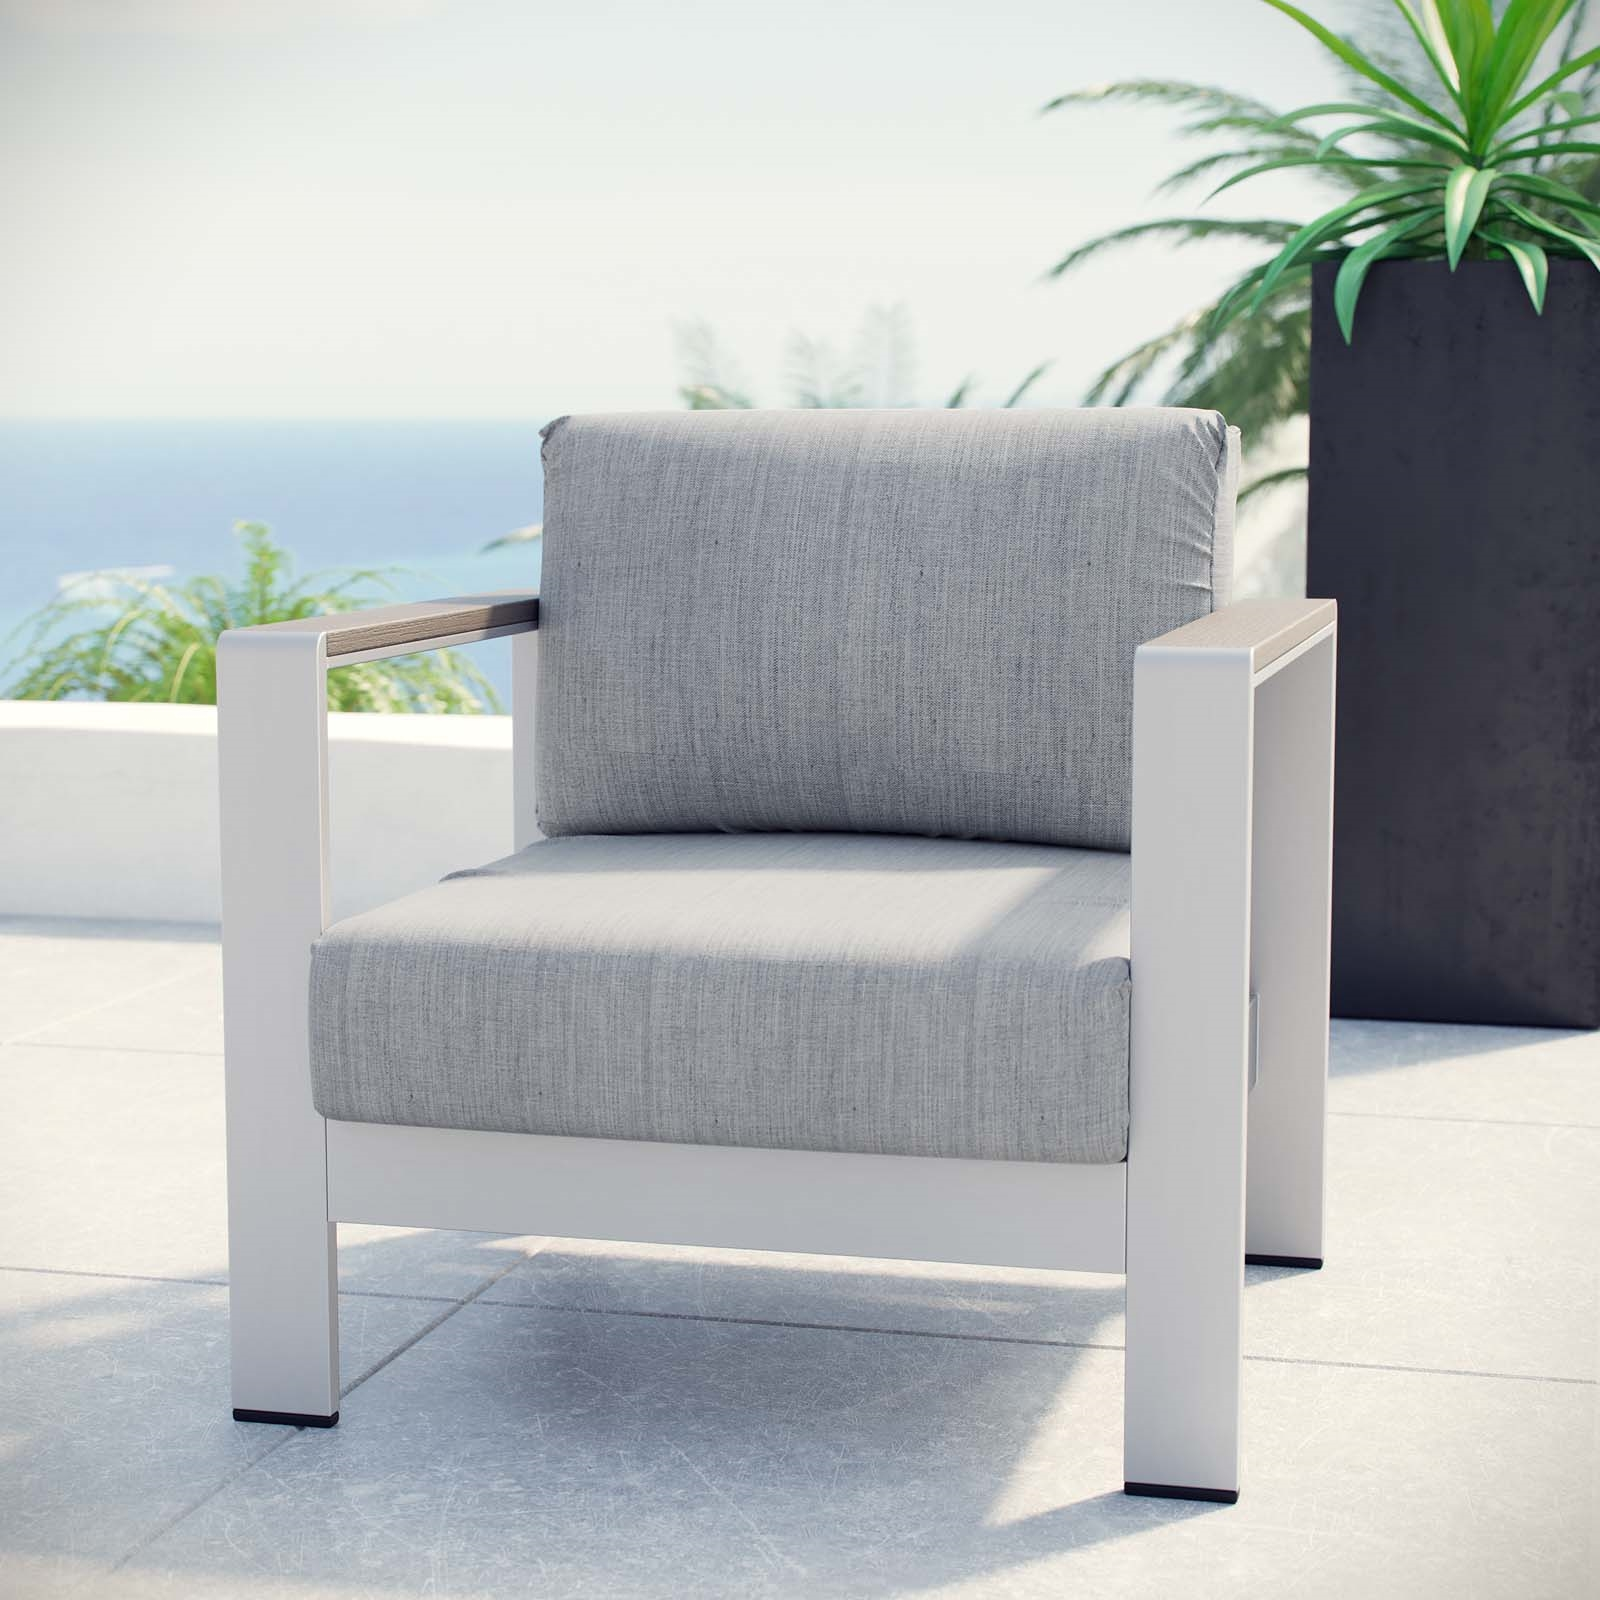 Shore Outdoor Patio Aluminum Armchair in Silver Gray